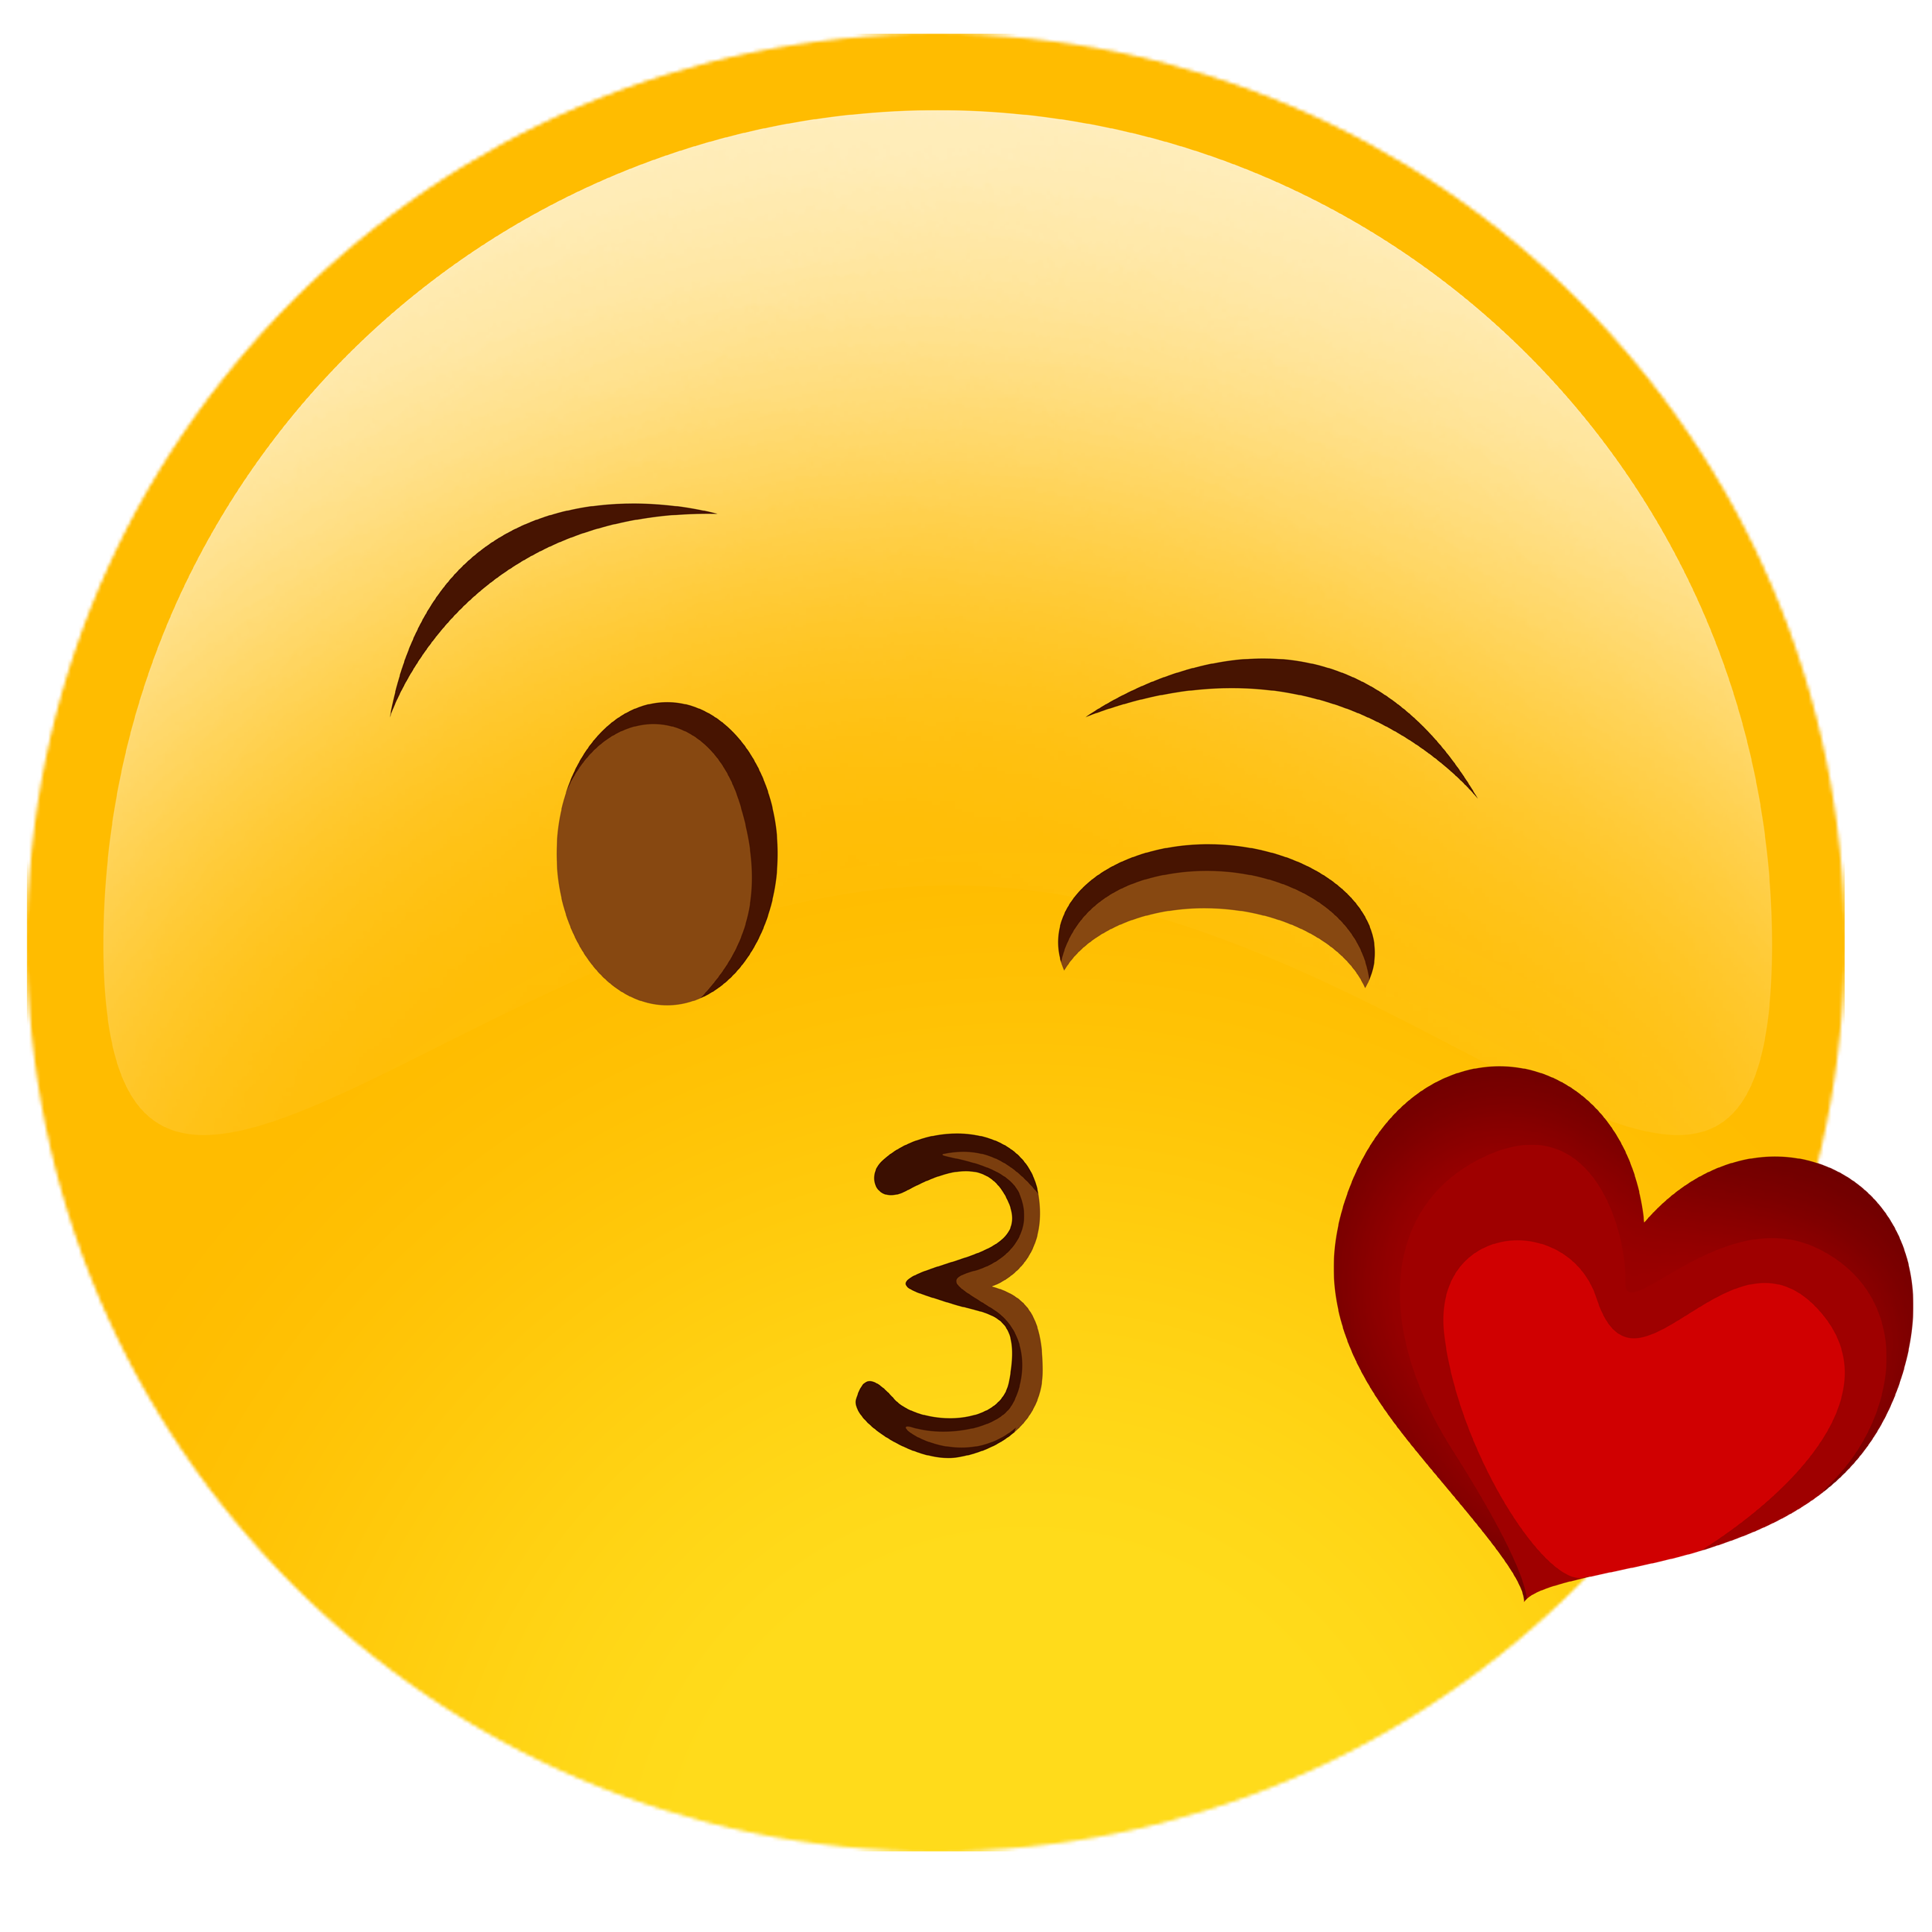 Wink emoji clipart jpg freeuse library Face with Tears of Joy emoji Kiss Wink Smiley - faces png ... jpg freeuse library